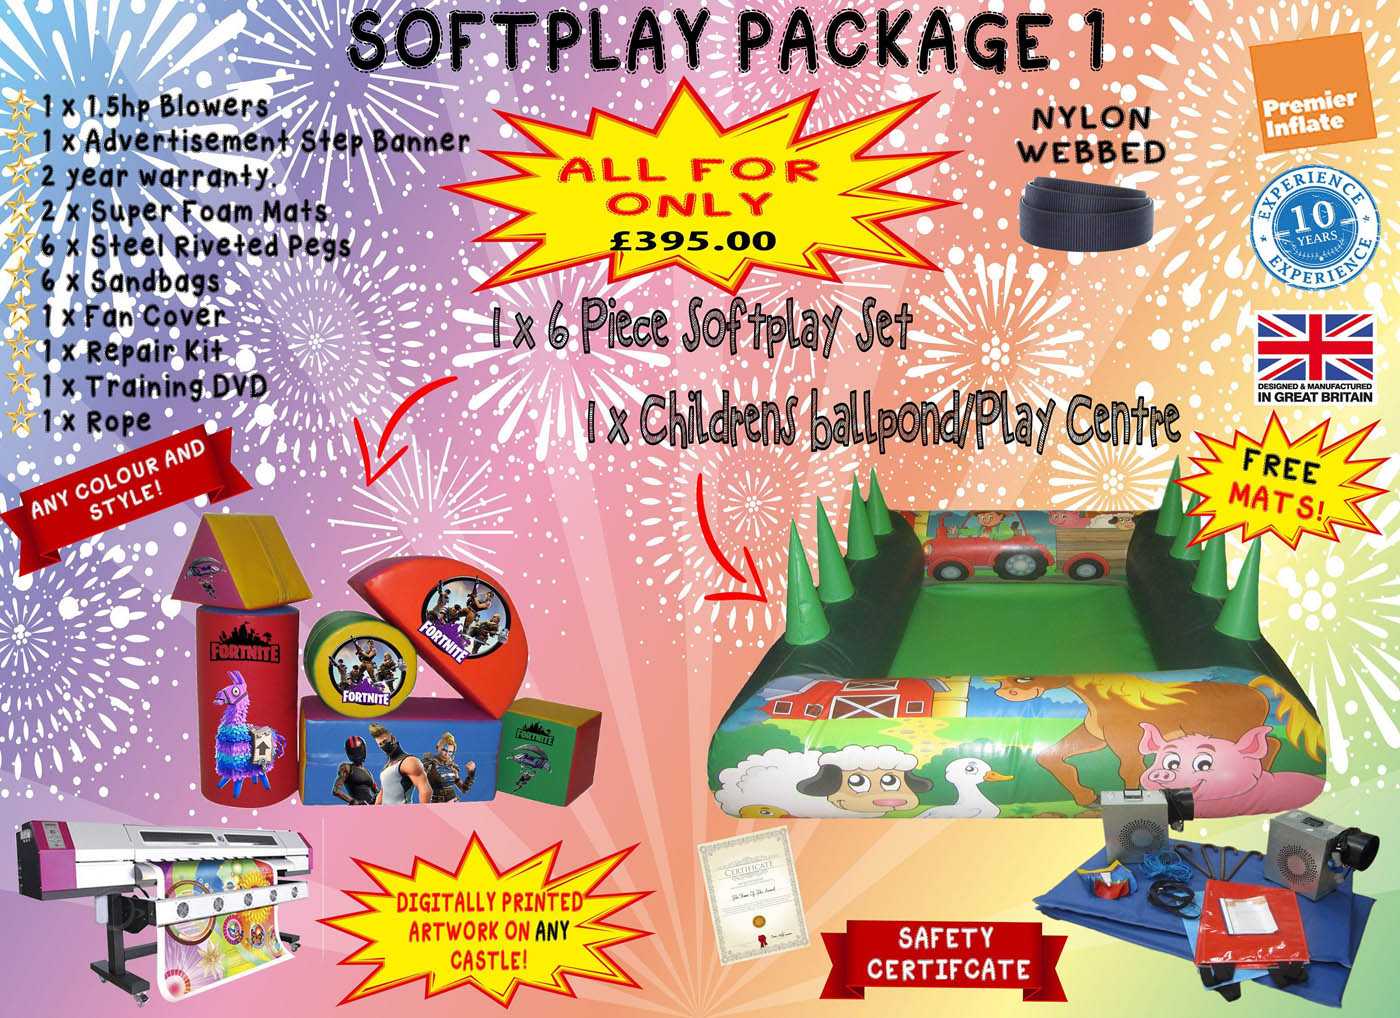 Soft Play Package Deals for Sale UK